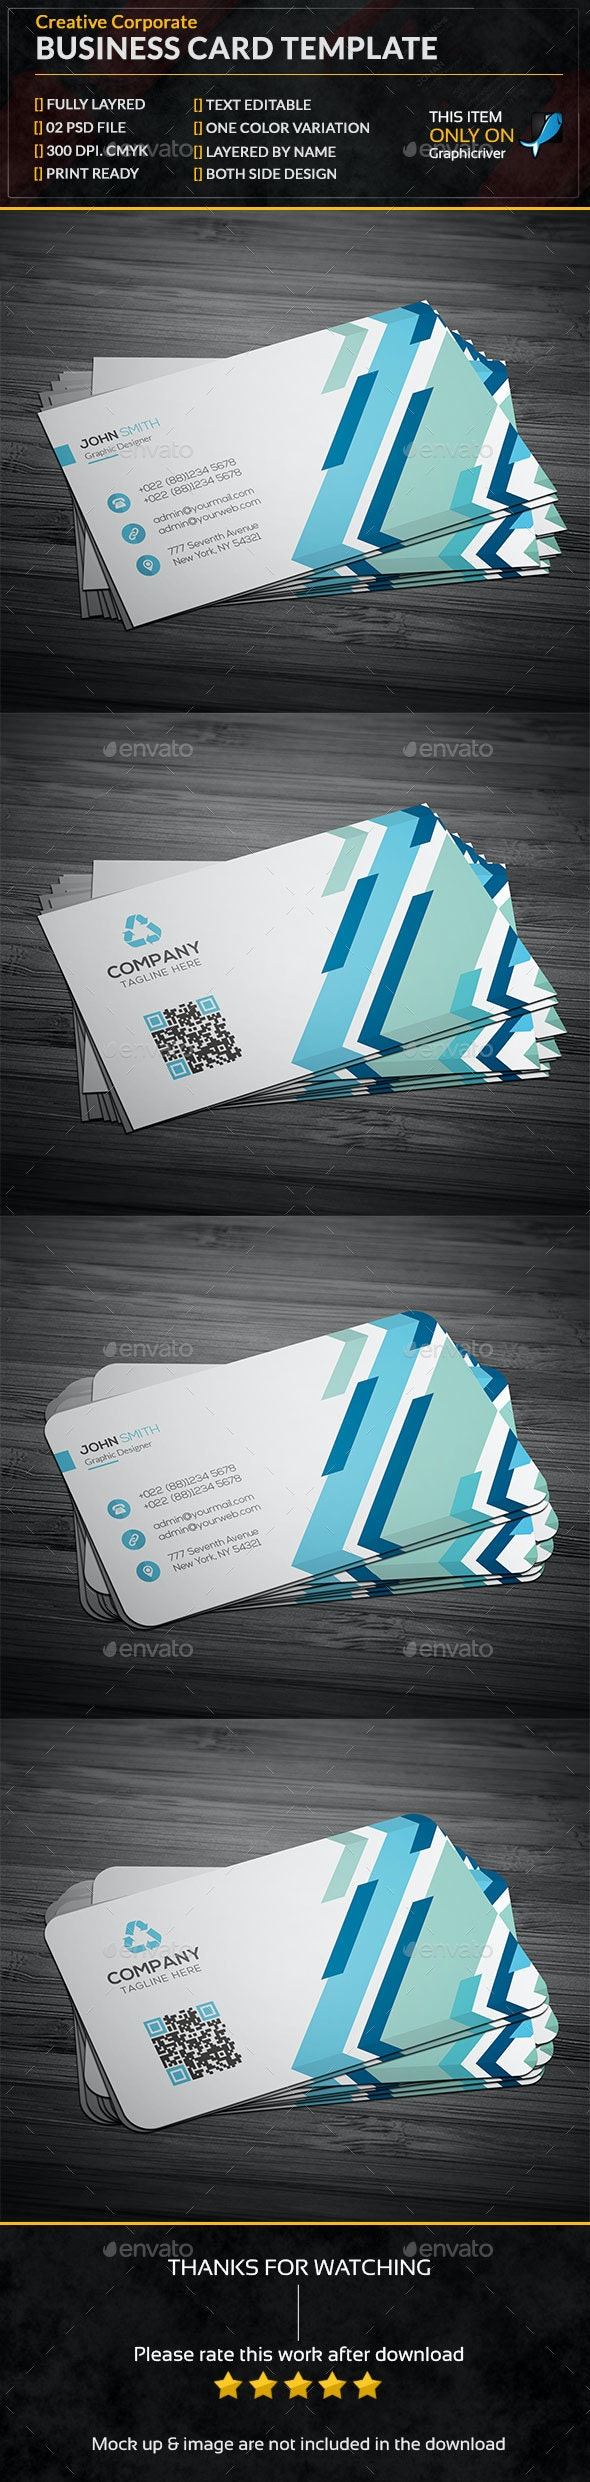 Creative Colorful Business Card Template - Business Cards Print Templates